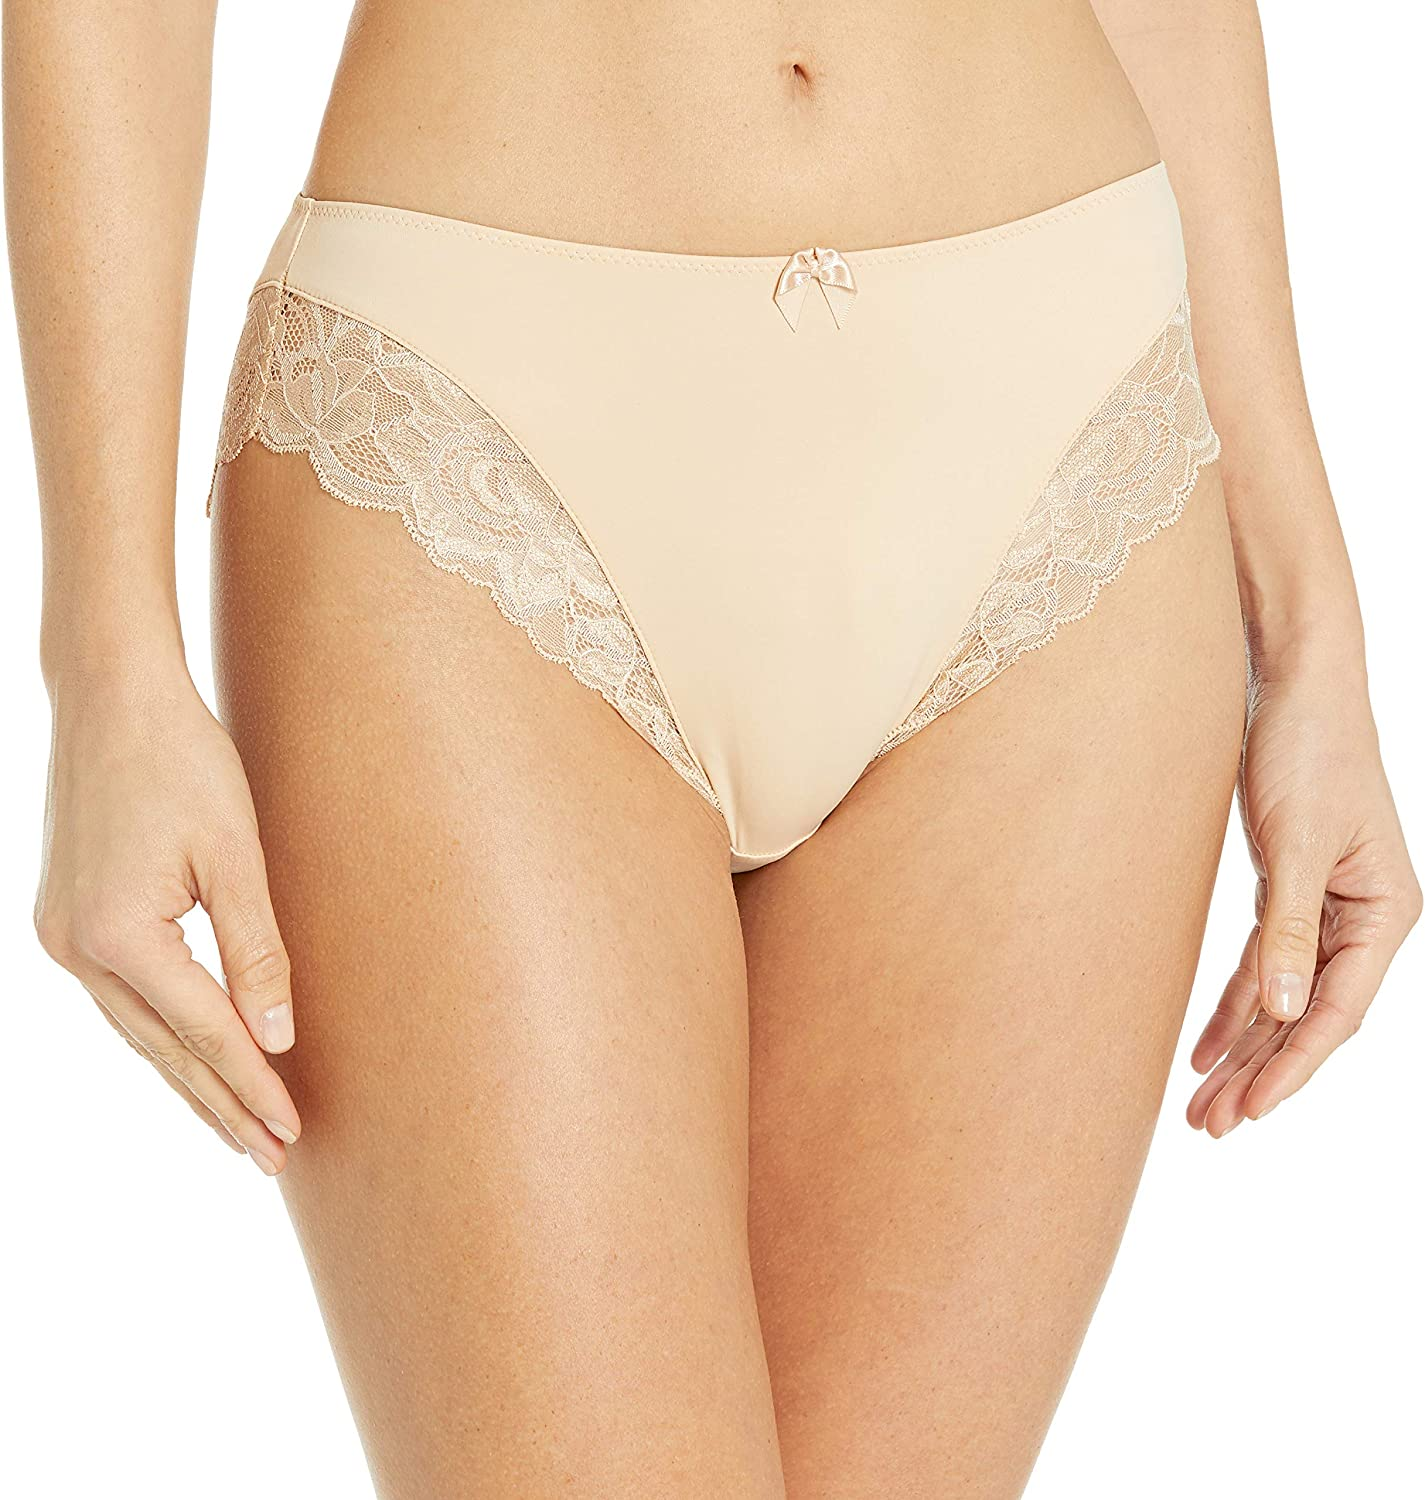 Fantasie Rebecca Lace Brief Knickers 9425 Ivory or Sand Beige